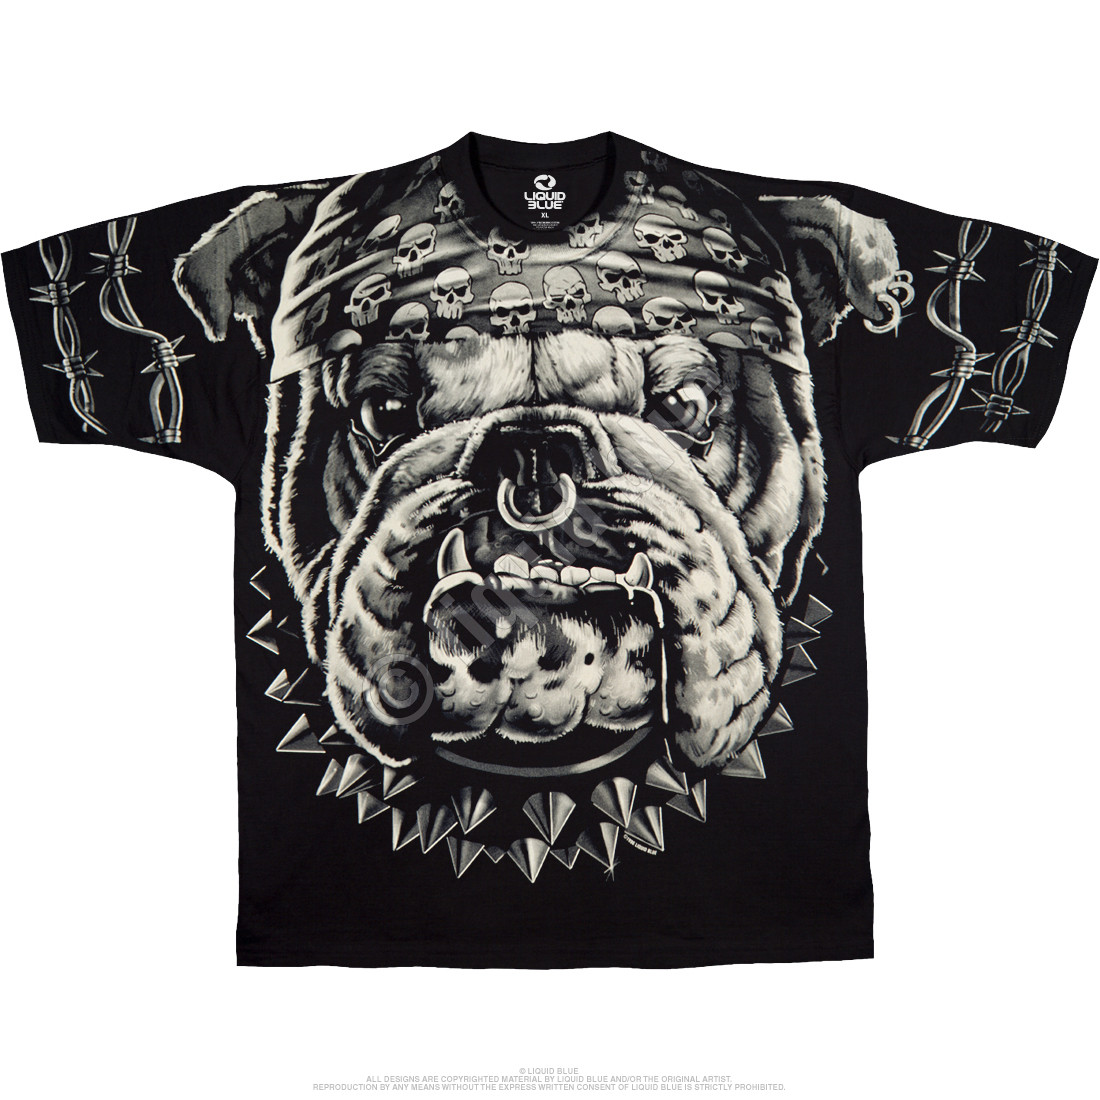 Cats Suck Bulldog Black T-Shirt